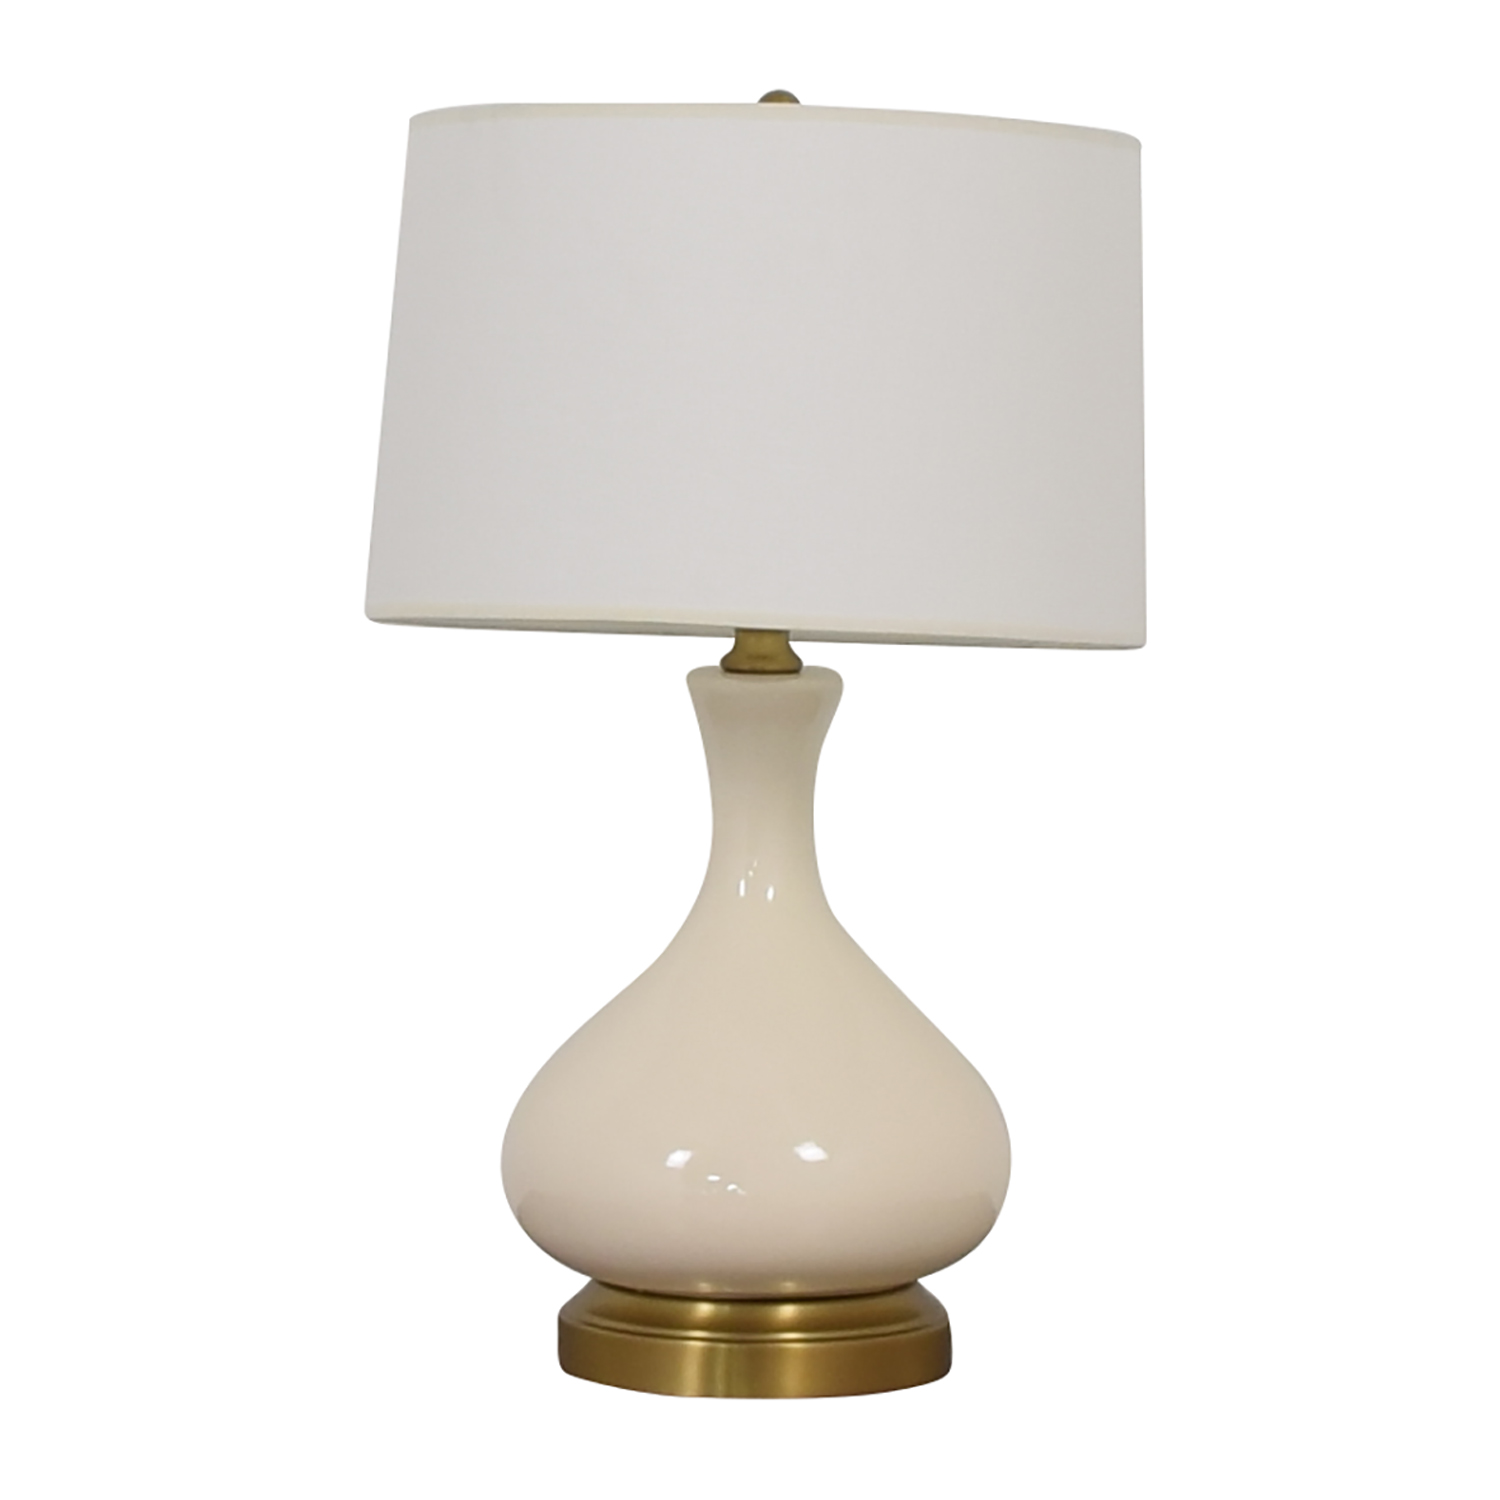 Modern Lantern Bartlett Table Lamp / Lamps